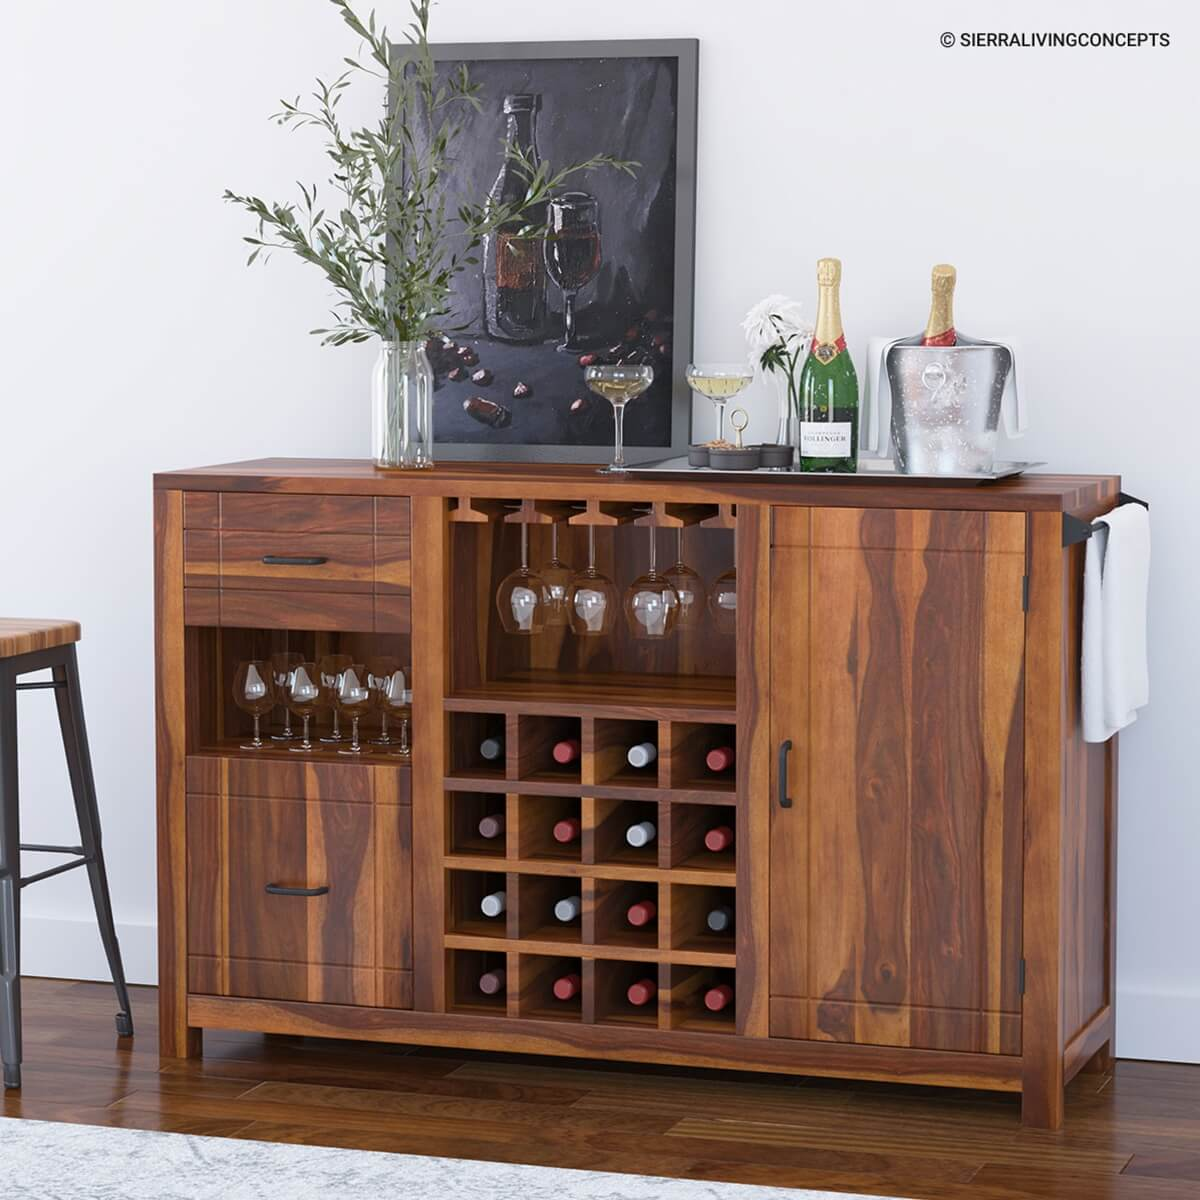 Mancos Rustic Solid Wood Modern Bar Cabinet With Slide Out Drawer